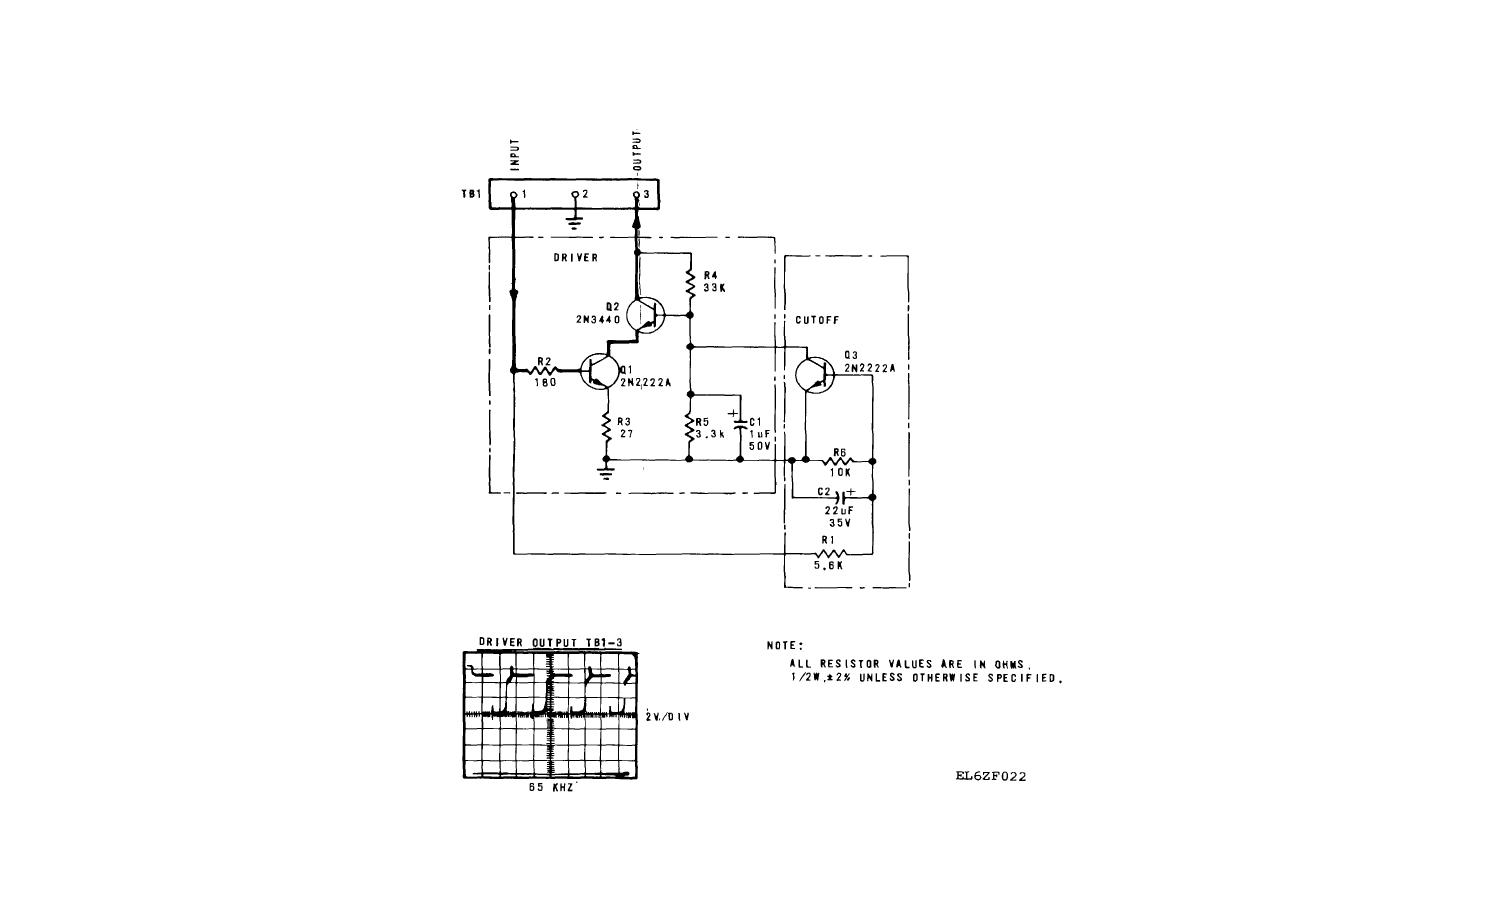 FO-6. Switched Regulator Driver A1A3, Schematic Diagram.